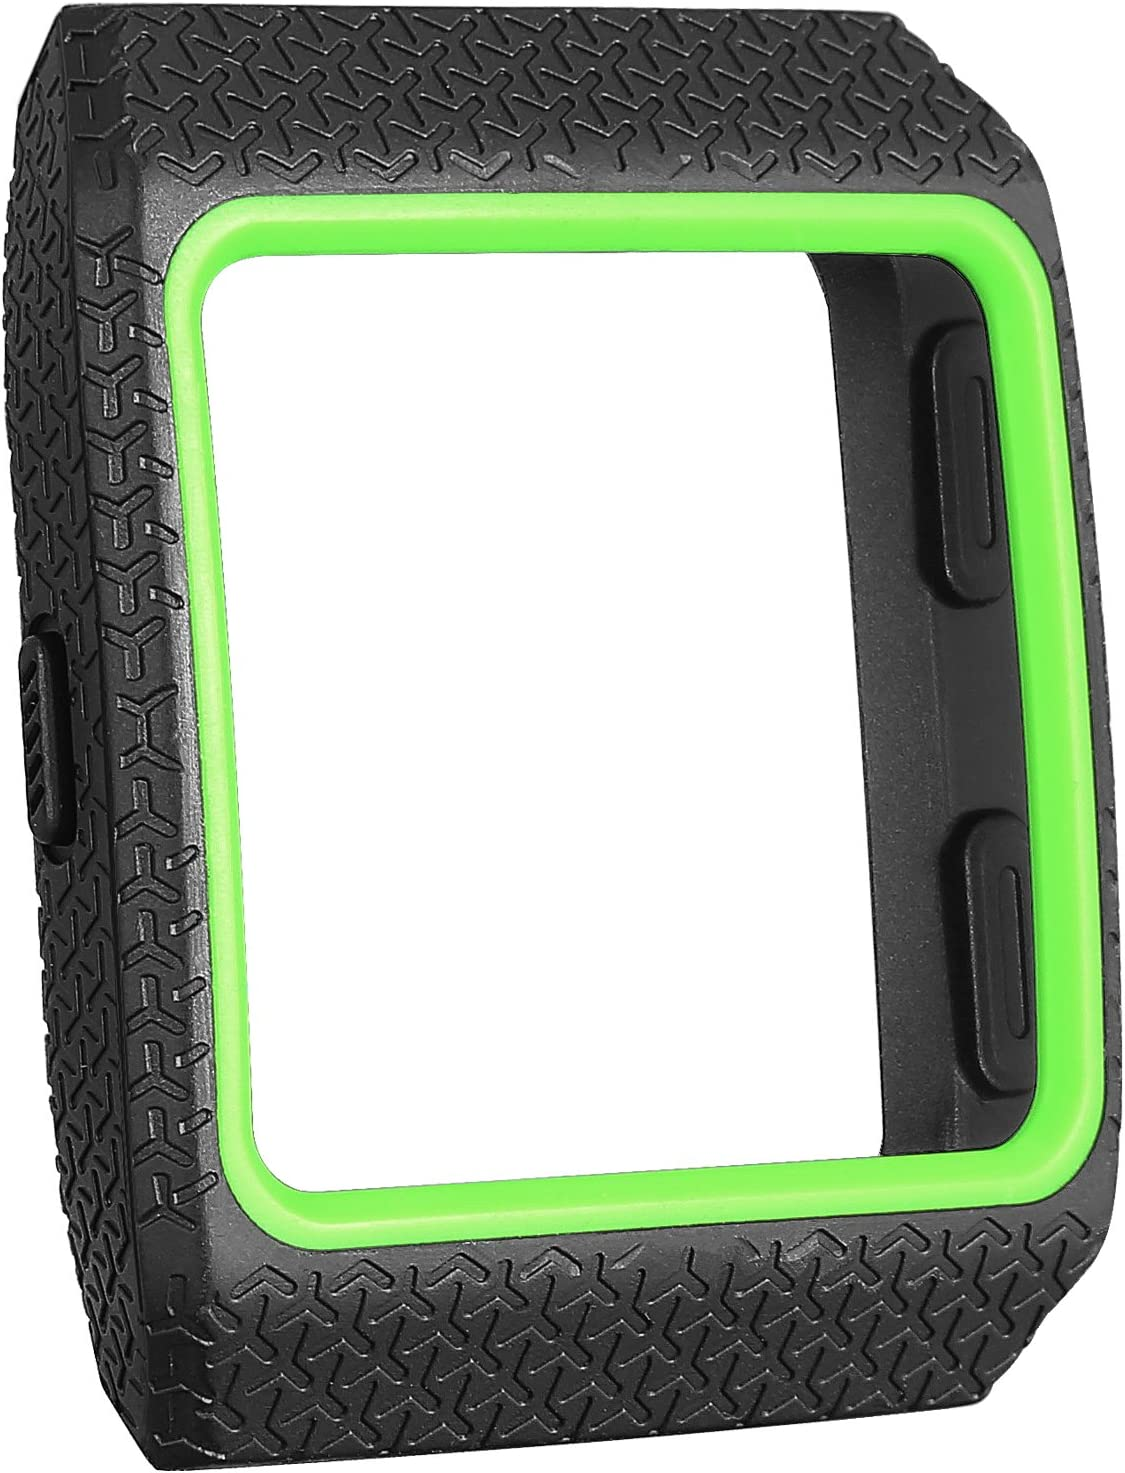 SKYLET Compatible with Fitbit Ionic Case, Soft Protective Case Shock Resistant Cover Shell Compatible with Fitbit Ionic Smart Watch (Black)